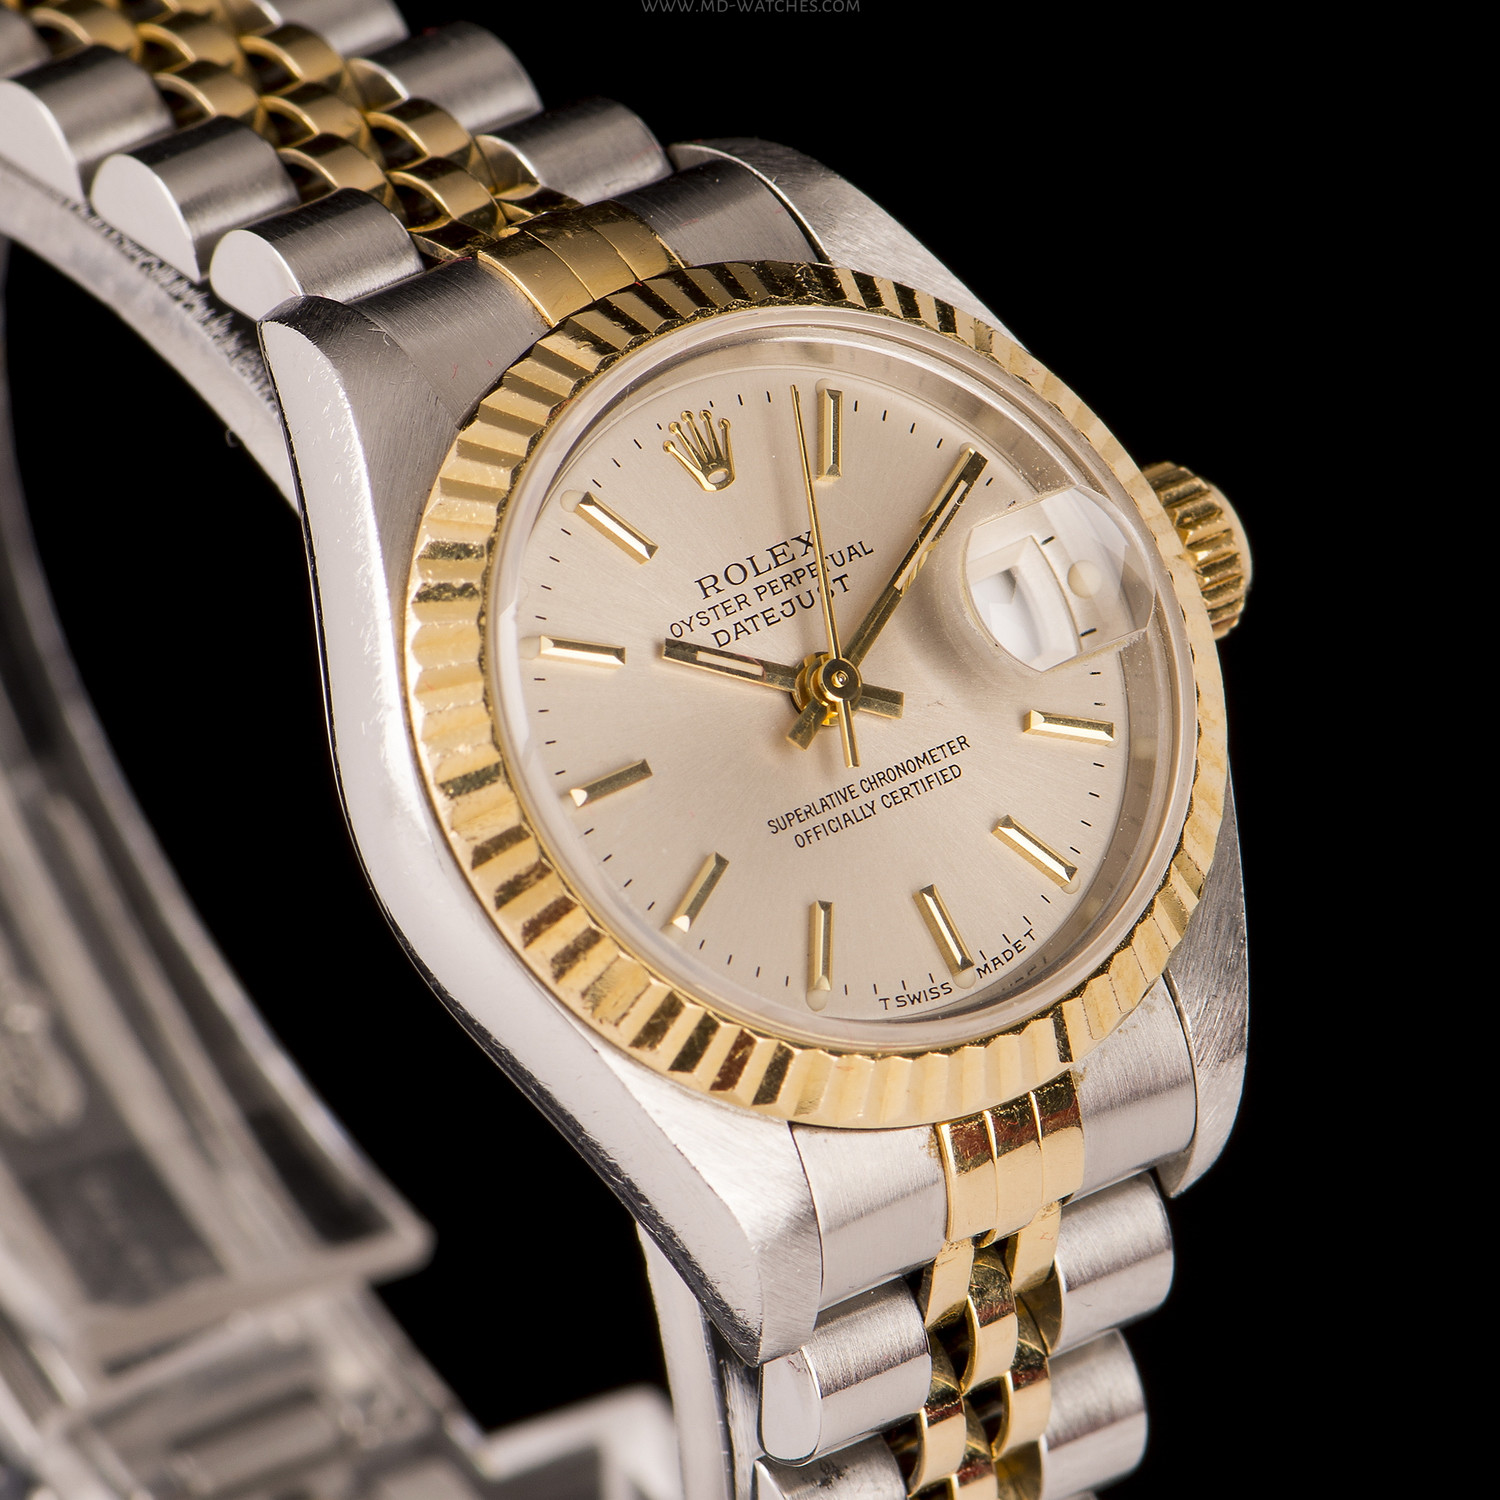 rolex oyster perpetual datejust ref 69173 26mm md watches. Black Bedroom Furniture Sets. Home Design Ideas